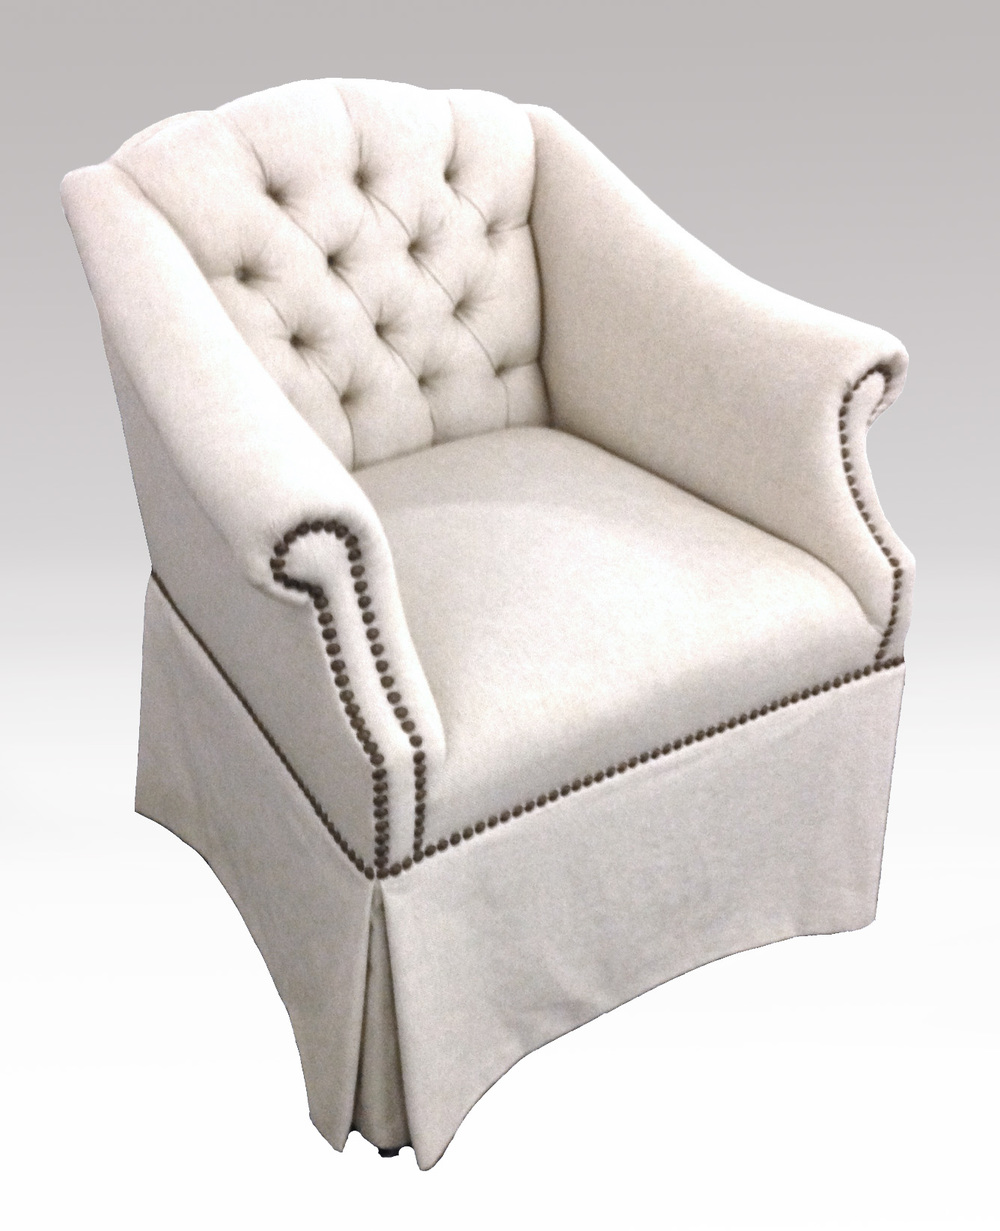 Club chair 3.jpg